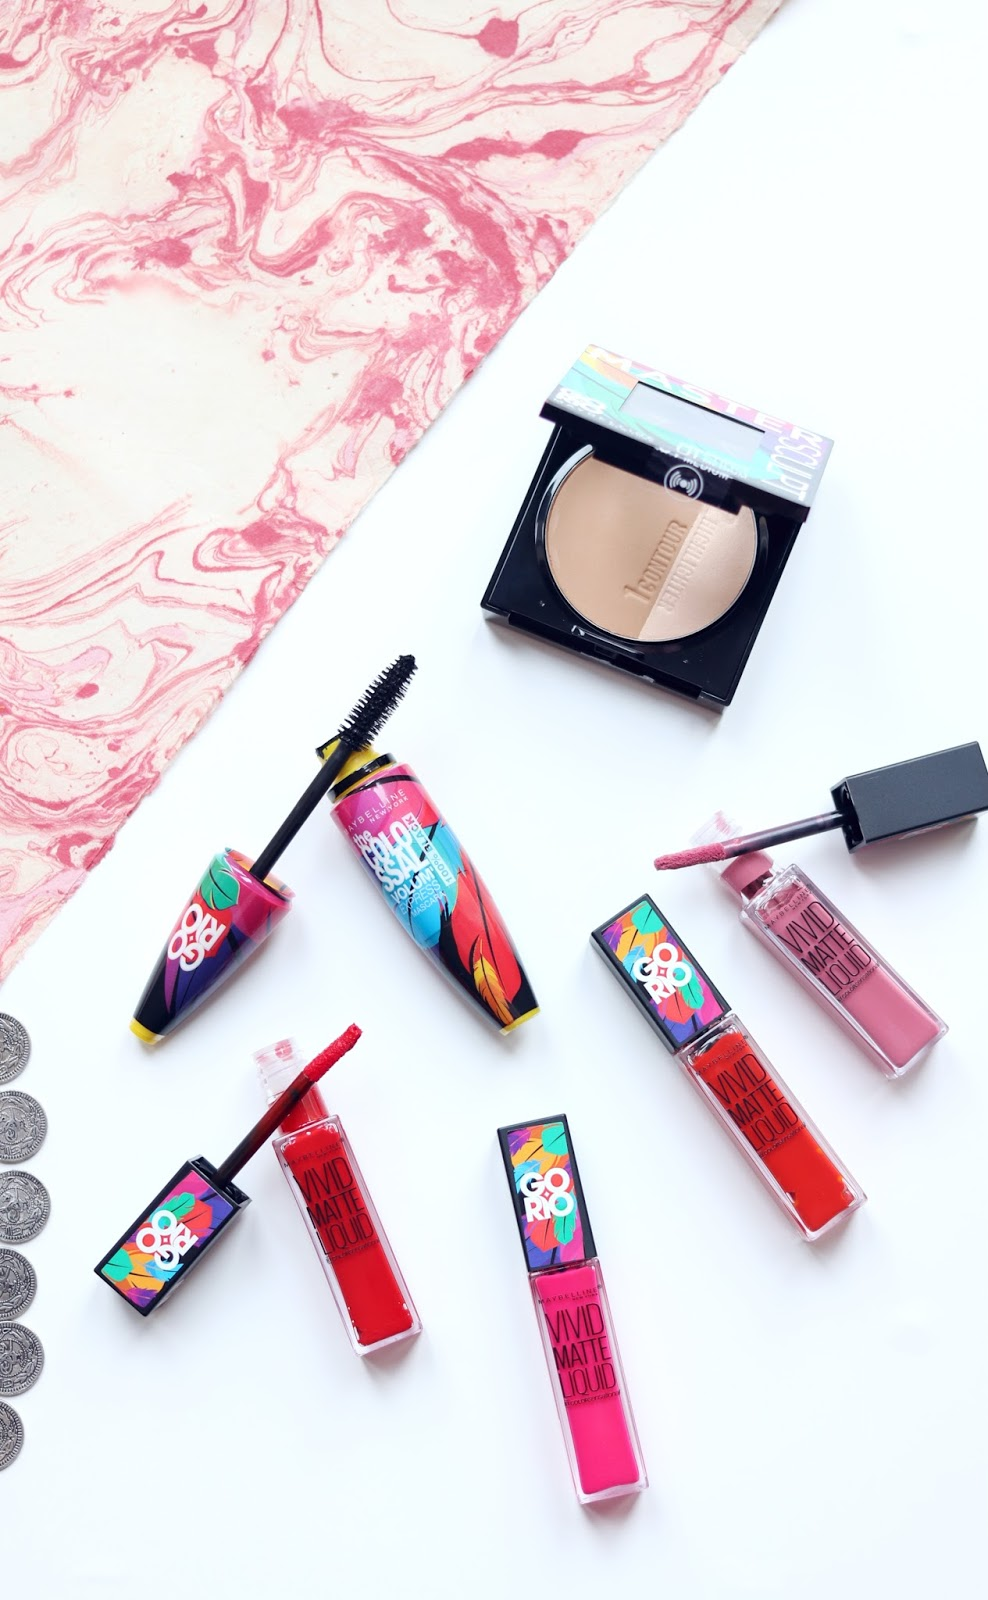 Maybelline Go Rio Collection